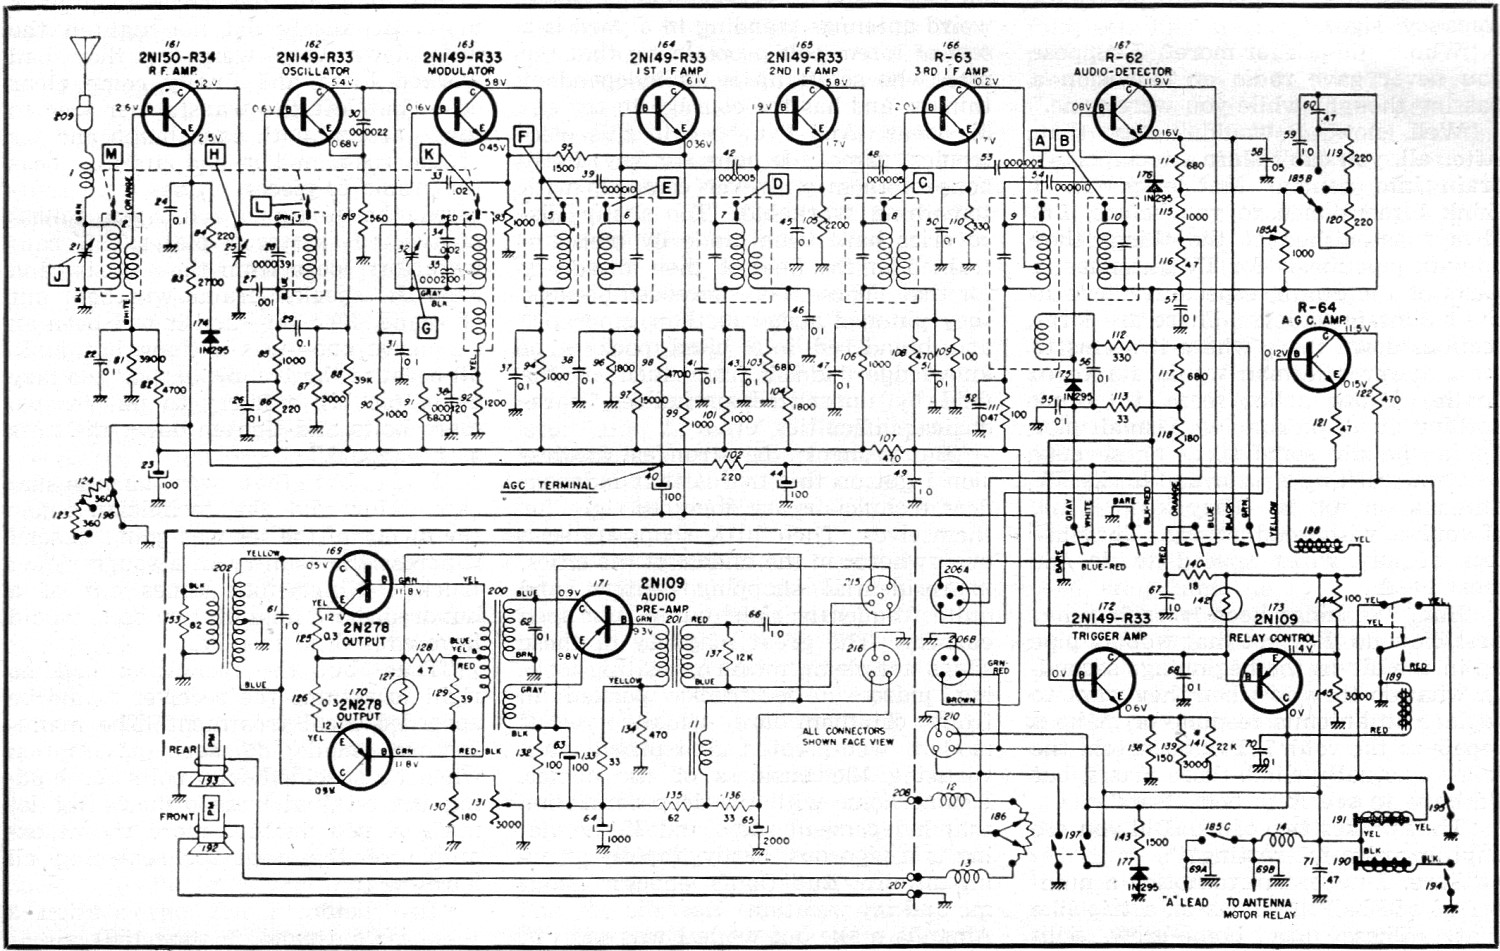 2004 jeep wrangler stereo wiring diagram with Delphi Radio Wiring Diagram on Service 20notes additionally Diagram Front End On F150 Truck2003 further 2009 Jeep Wrangler Diagrams Jk also 94 Jeep Grand Cherokee Fuse Box Wiring Diagrams in addition 97 Jeep Wrangler Wiring Harness Diagram.